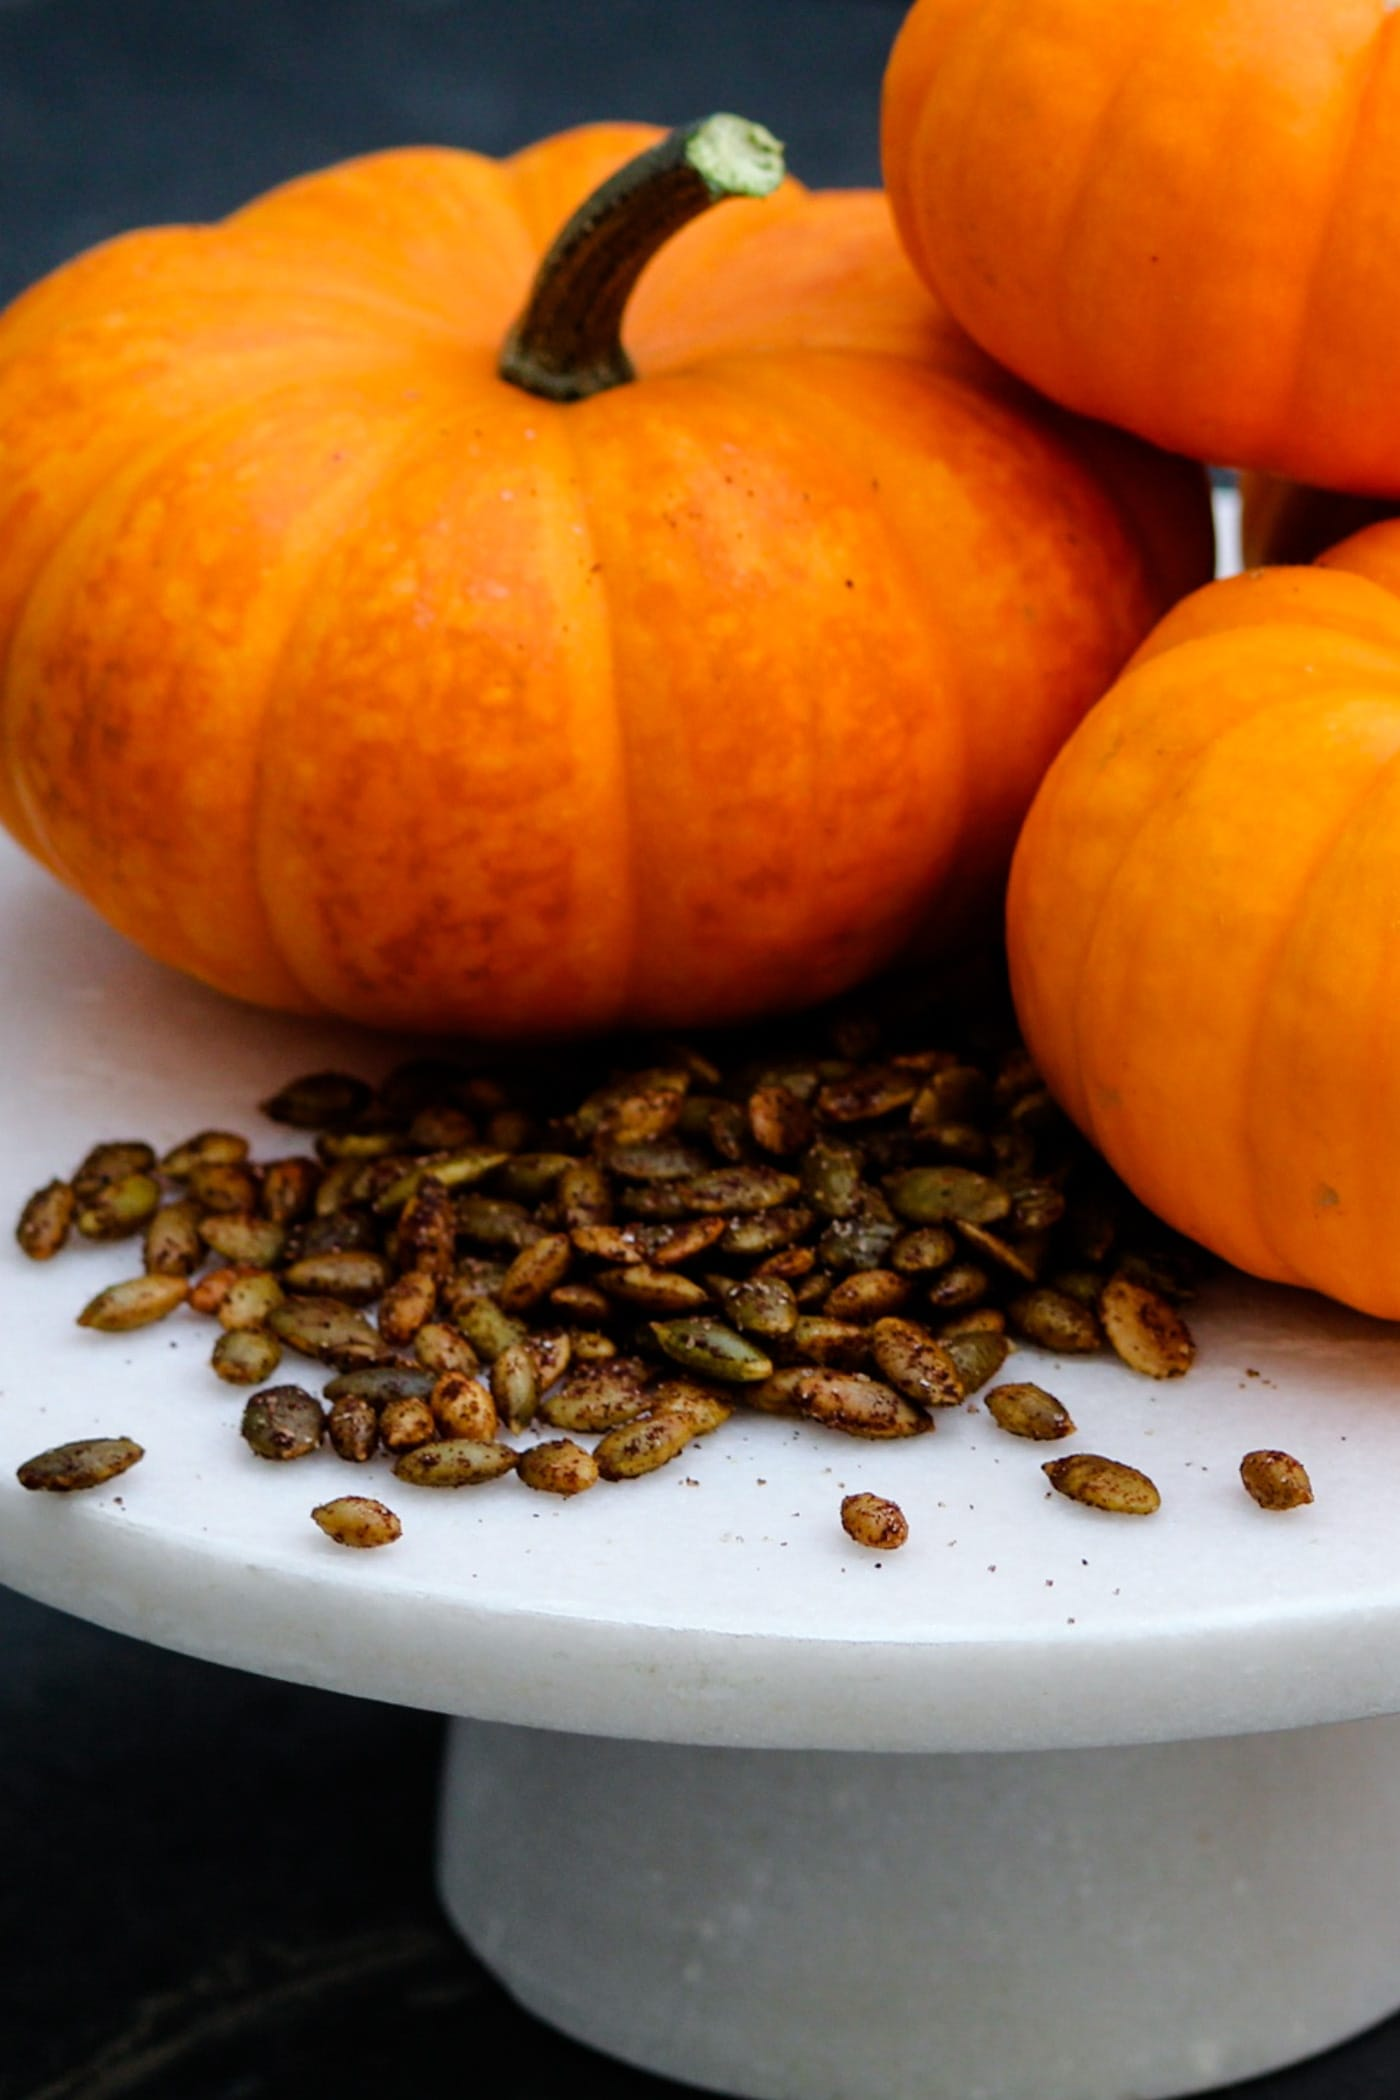 A pile of roasted pepitas sprinkled with spices sitting on a white cake plate with orange pumpkins in background on a dark slate surface